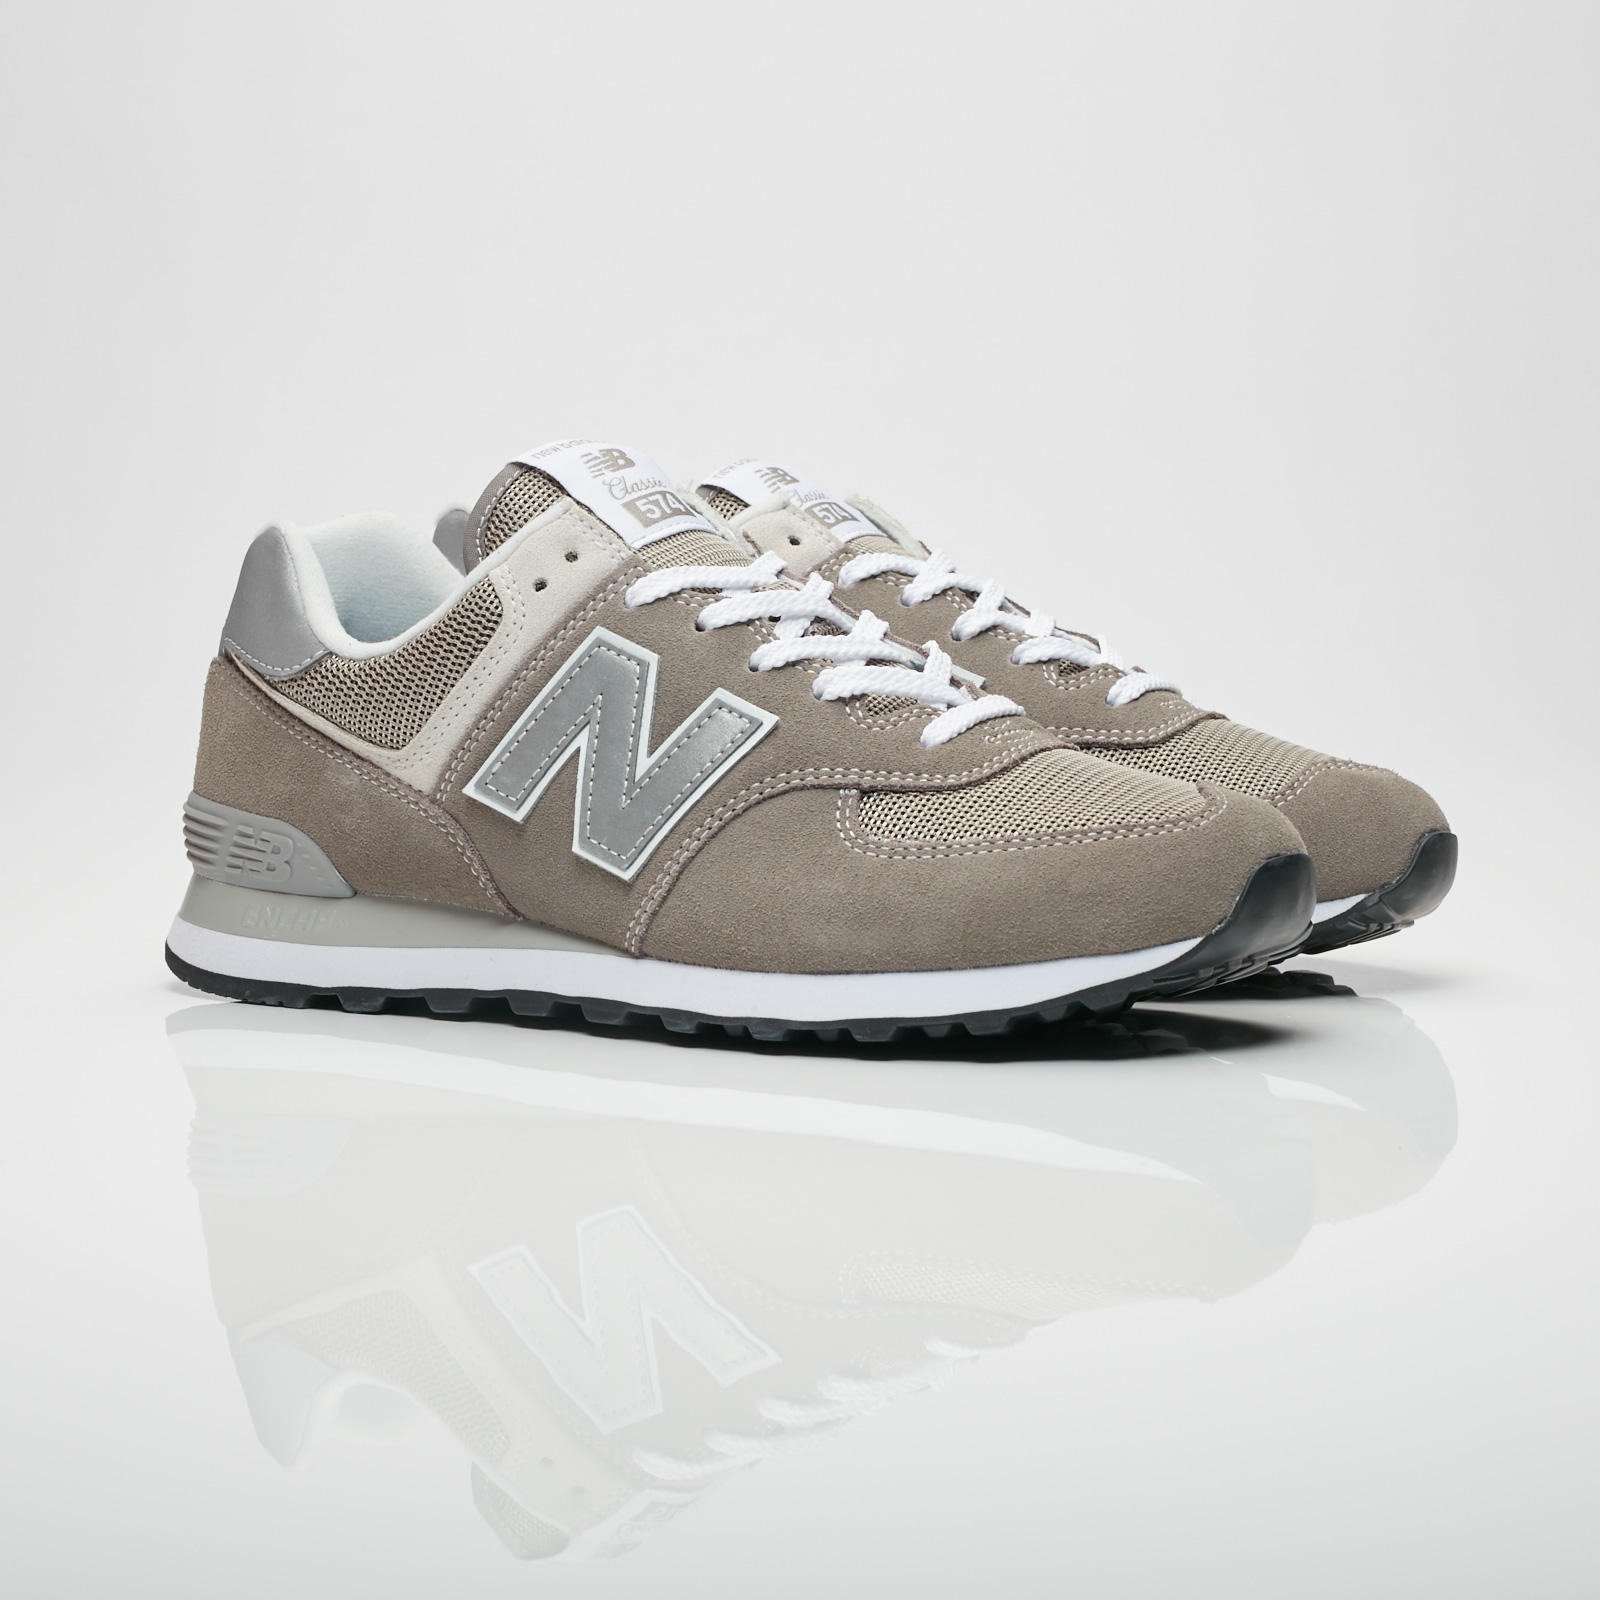 brand new 1d880 bf0af New Balance ML574EGG - Ml574egg - Sneakersnstuff | sneakers ...